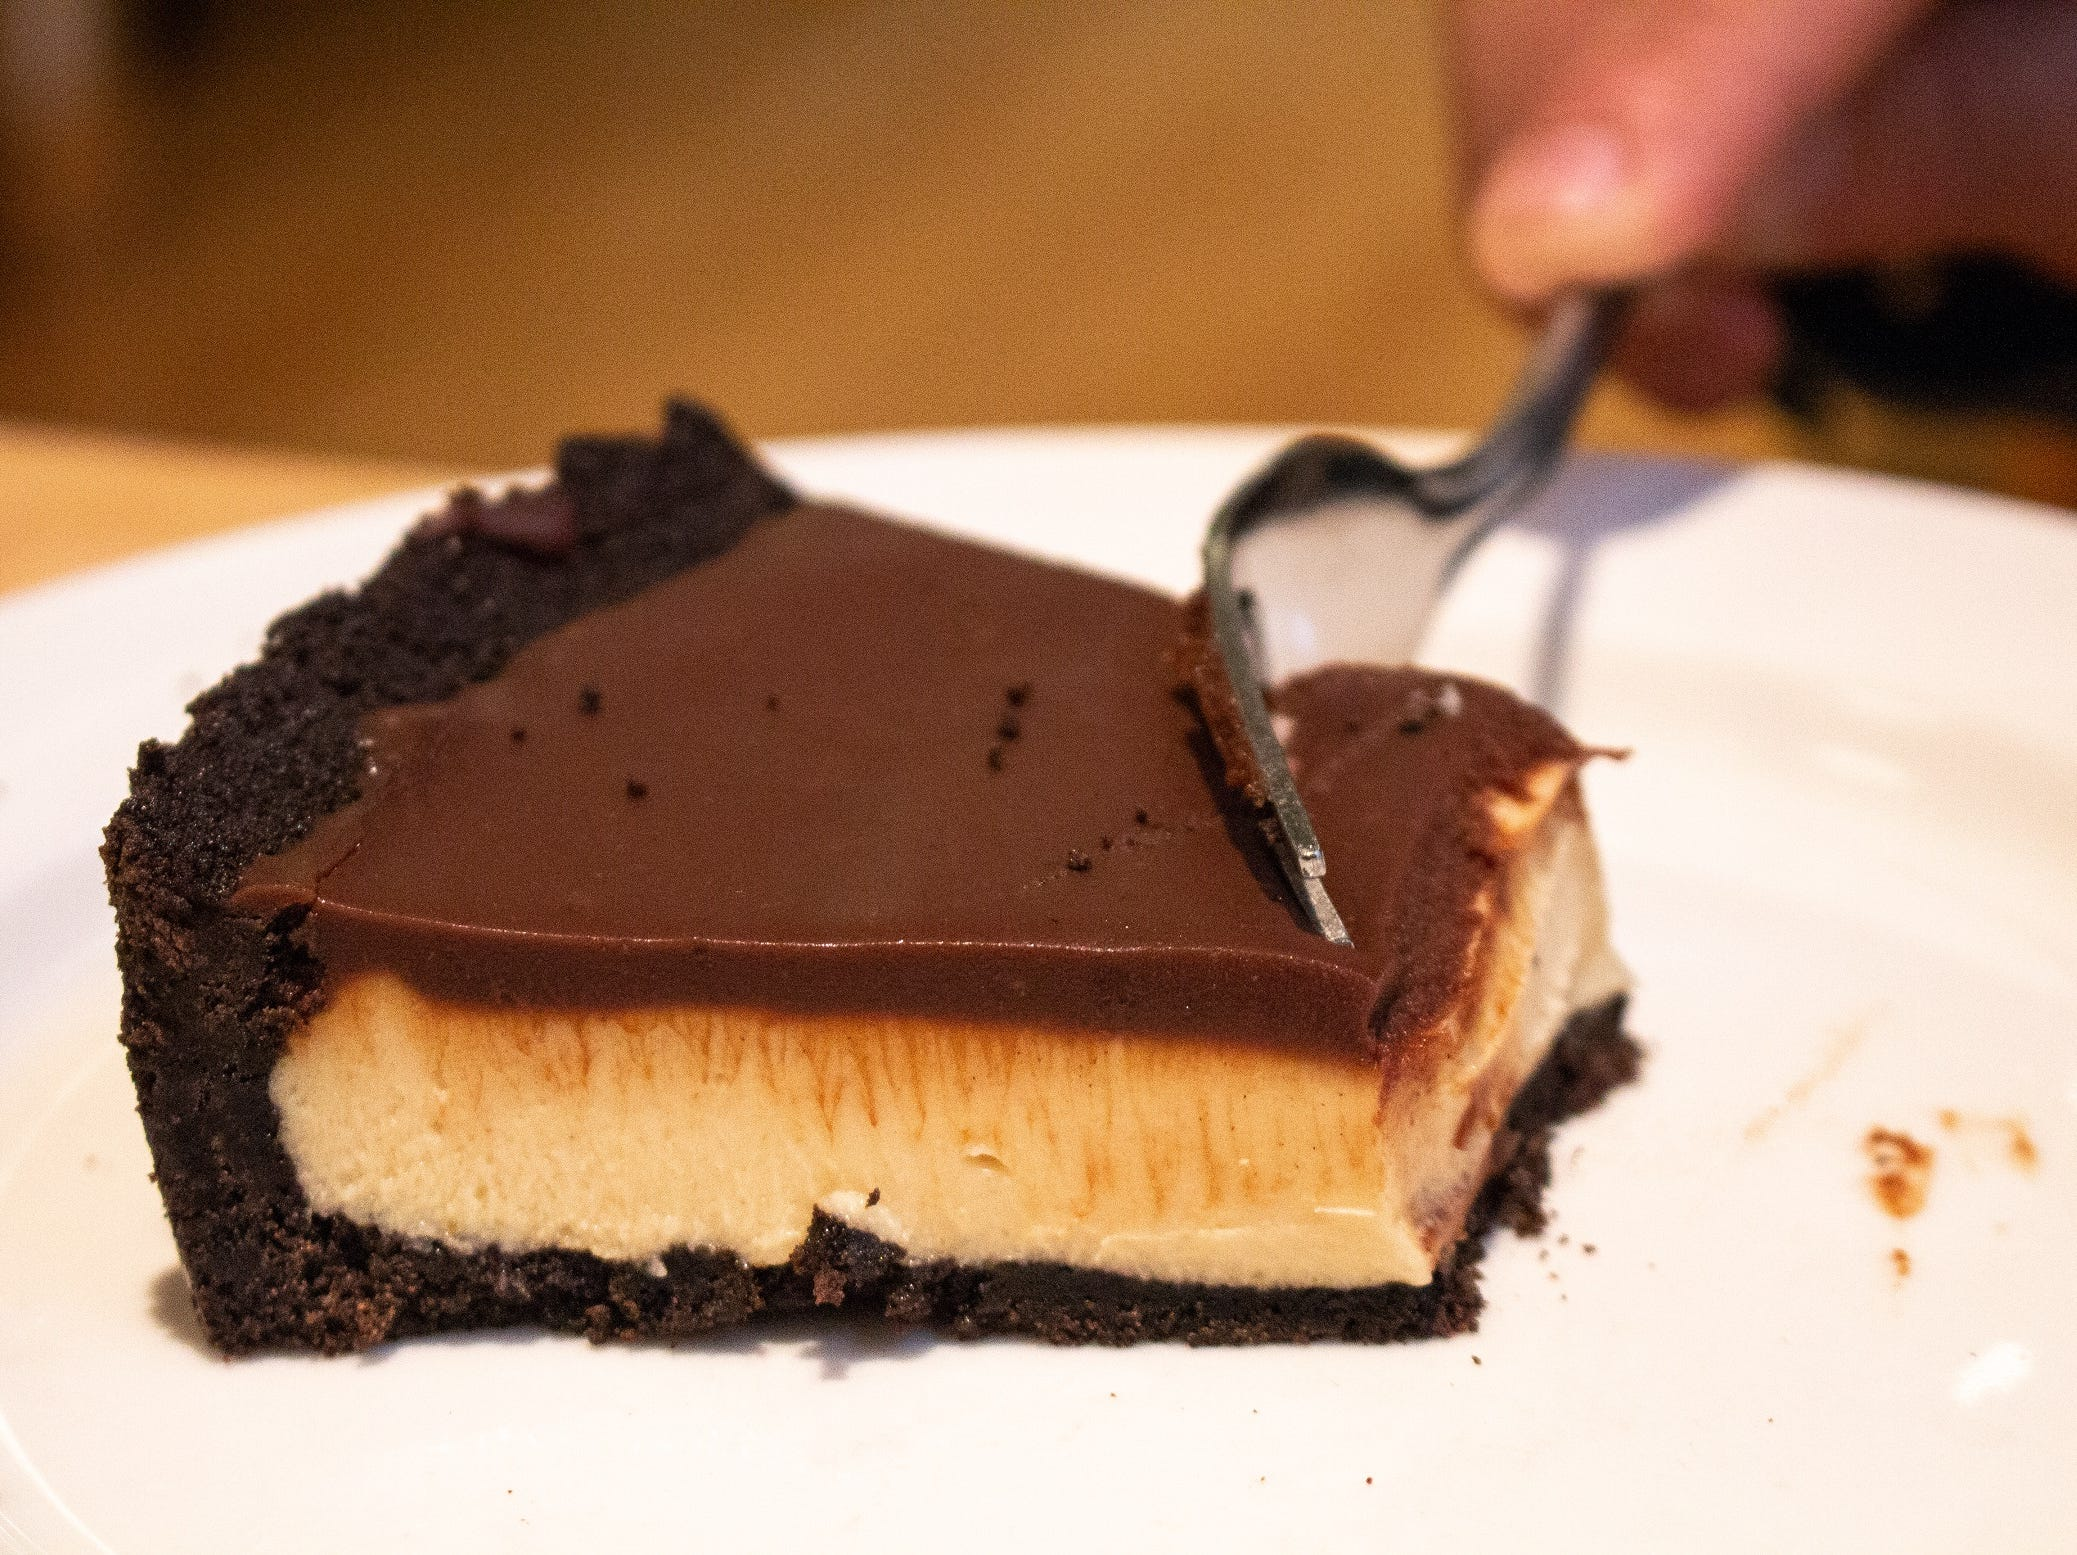 Chocolate peanut butter pie from The Tomato Head.